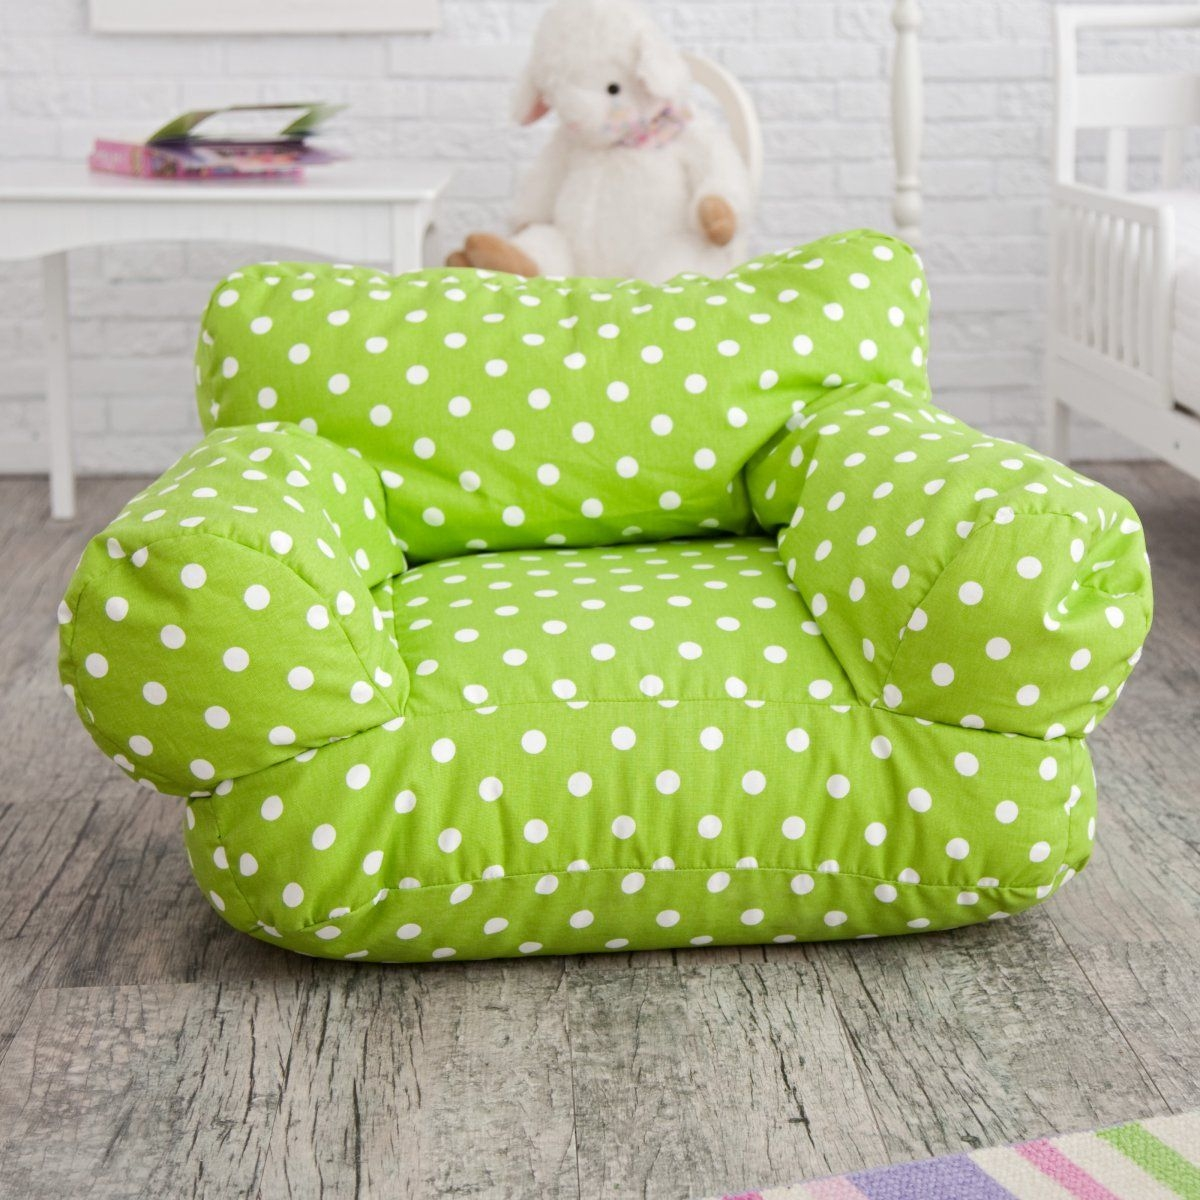 Beau Purple Polka Dot Bean Bag Chair